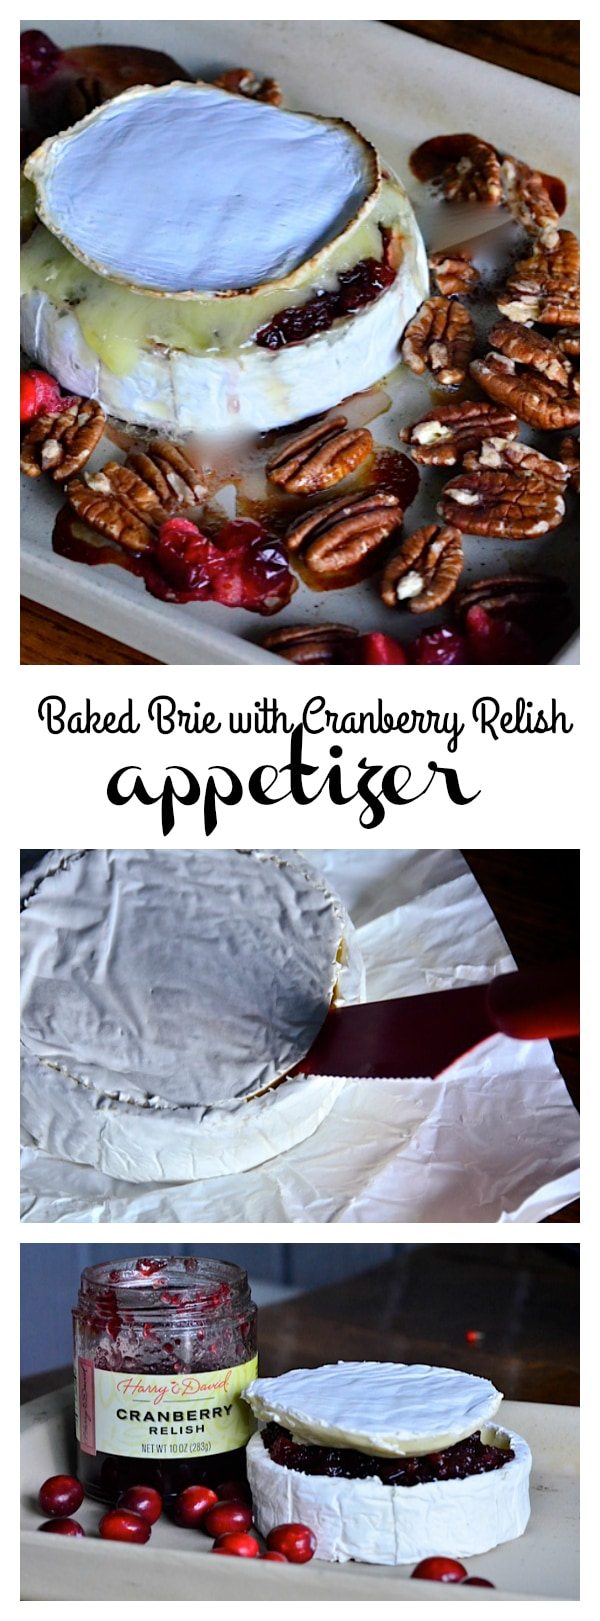 Baked Brie with Cranberry Relish Appetizer